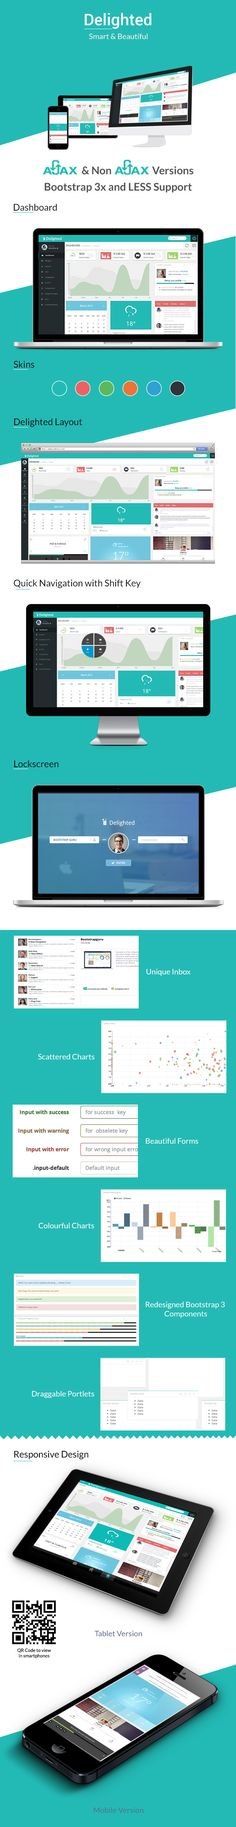 Site Templates - Delighted #Flat #Responsive #Bootstrap 3 Dashboard